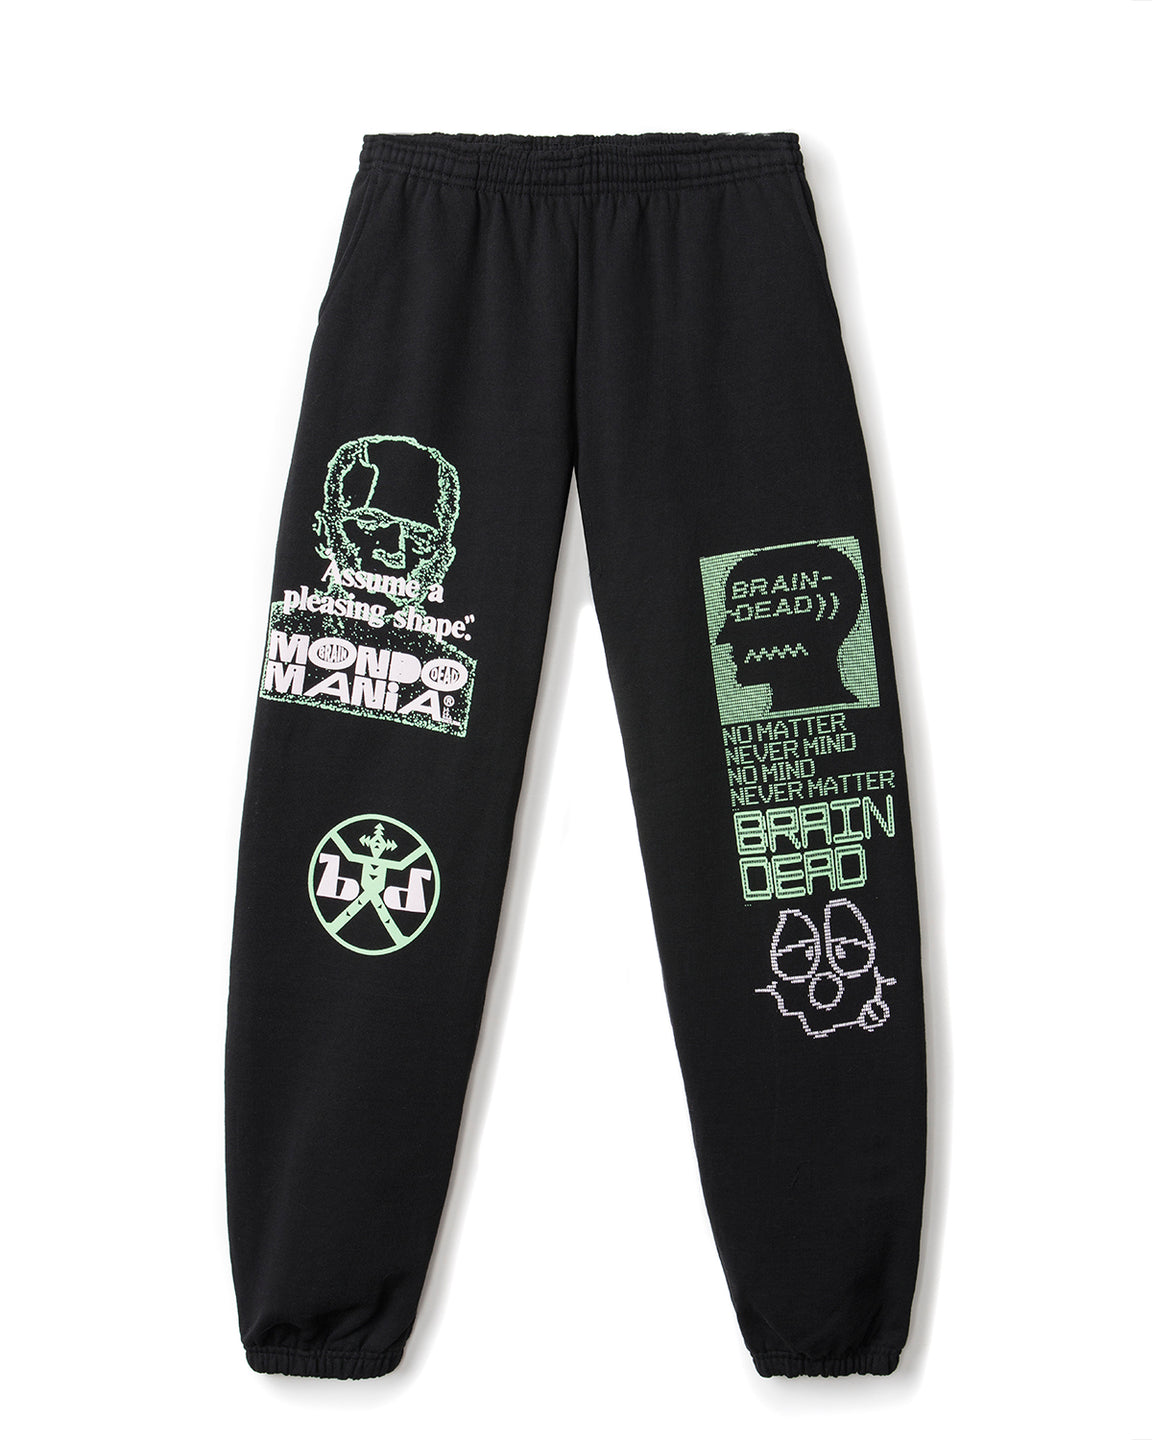 Pleasing Shape Sweatpants - Black